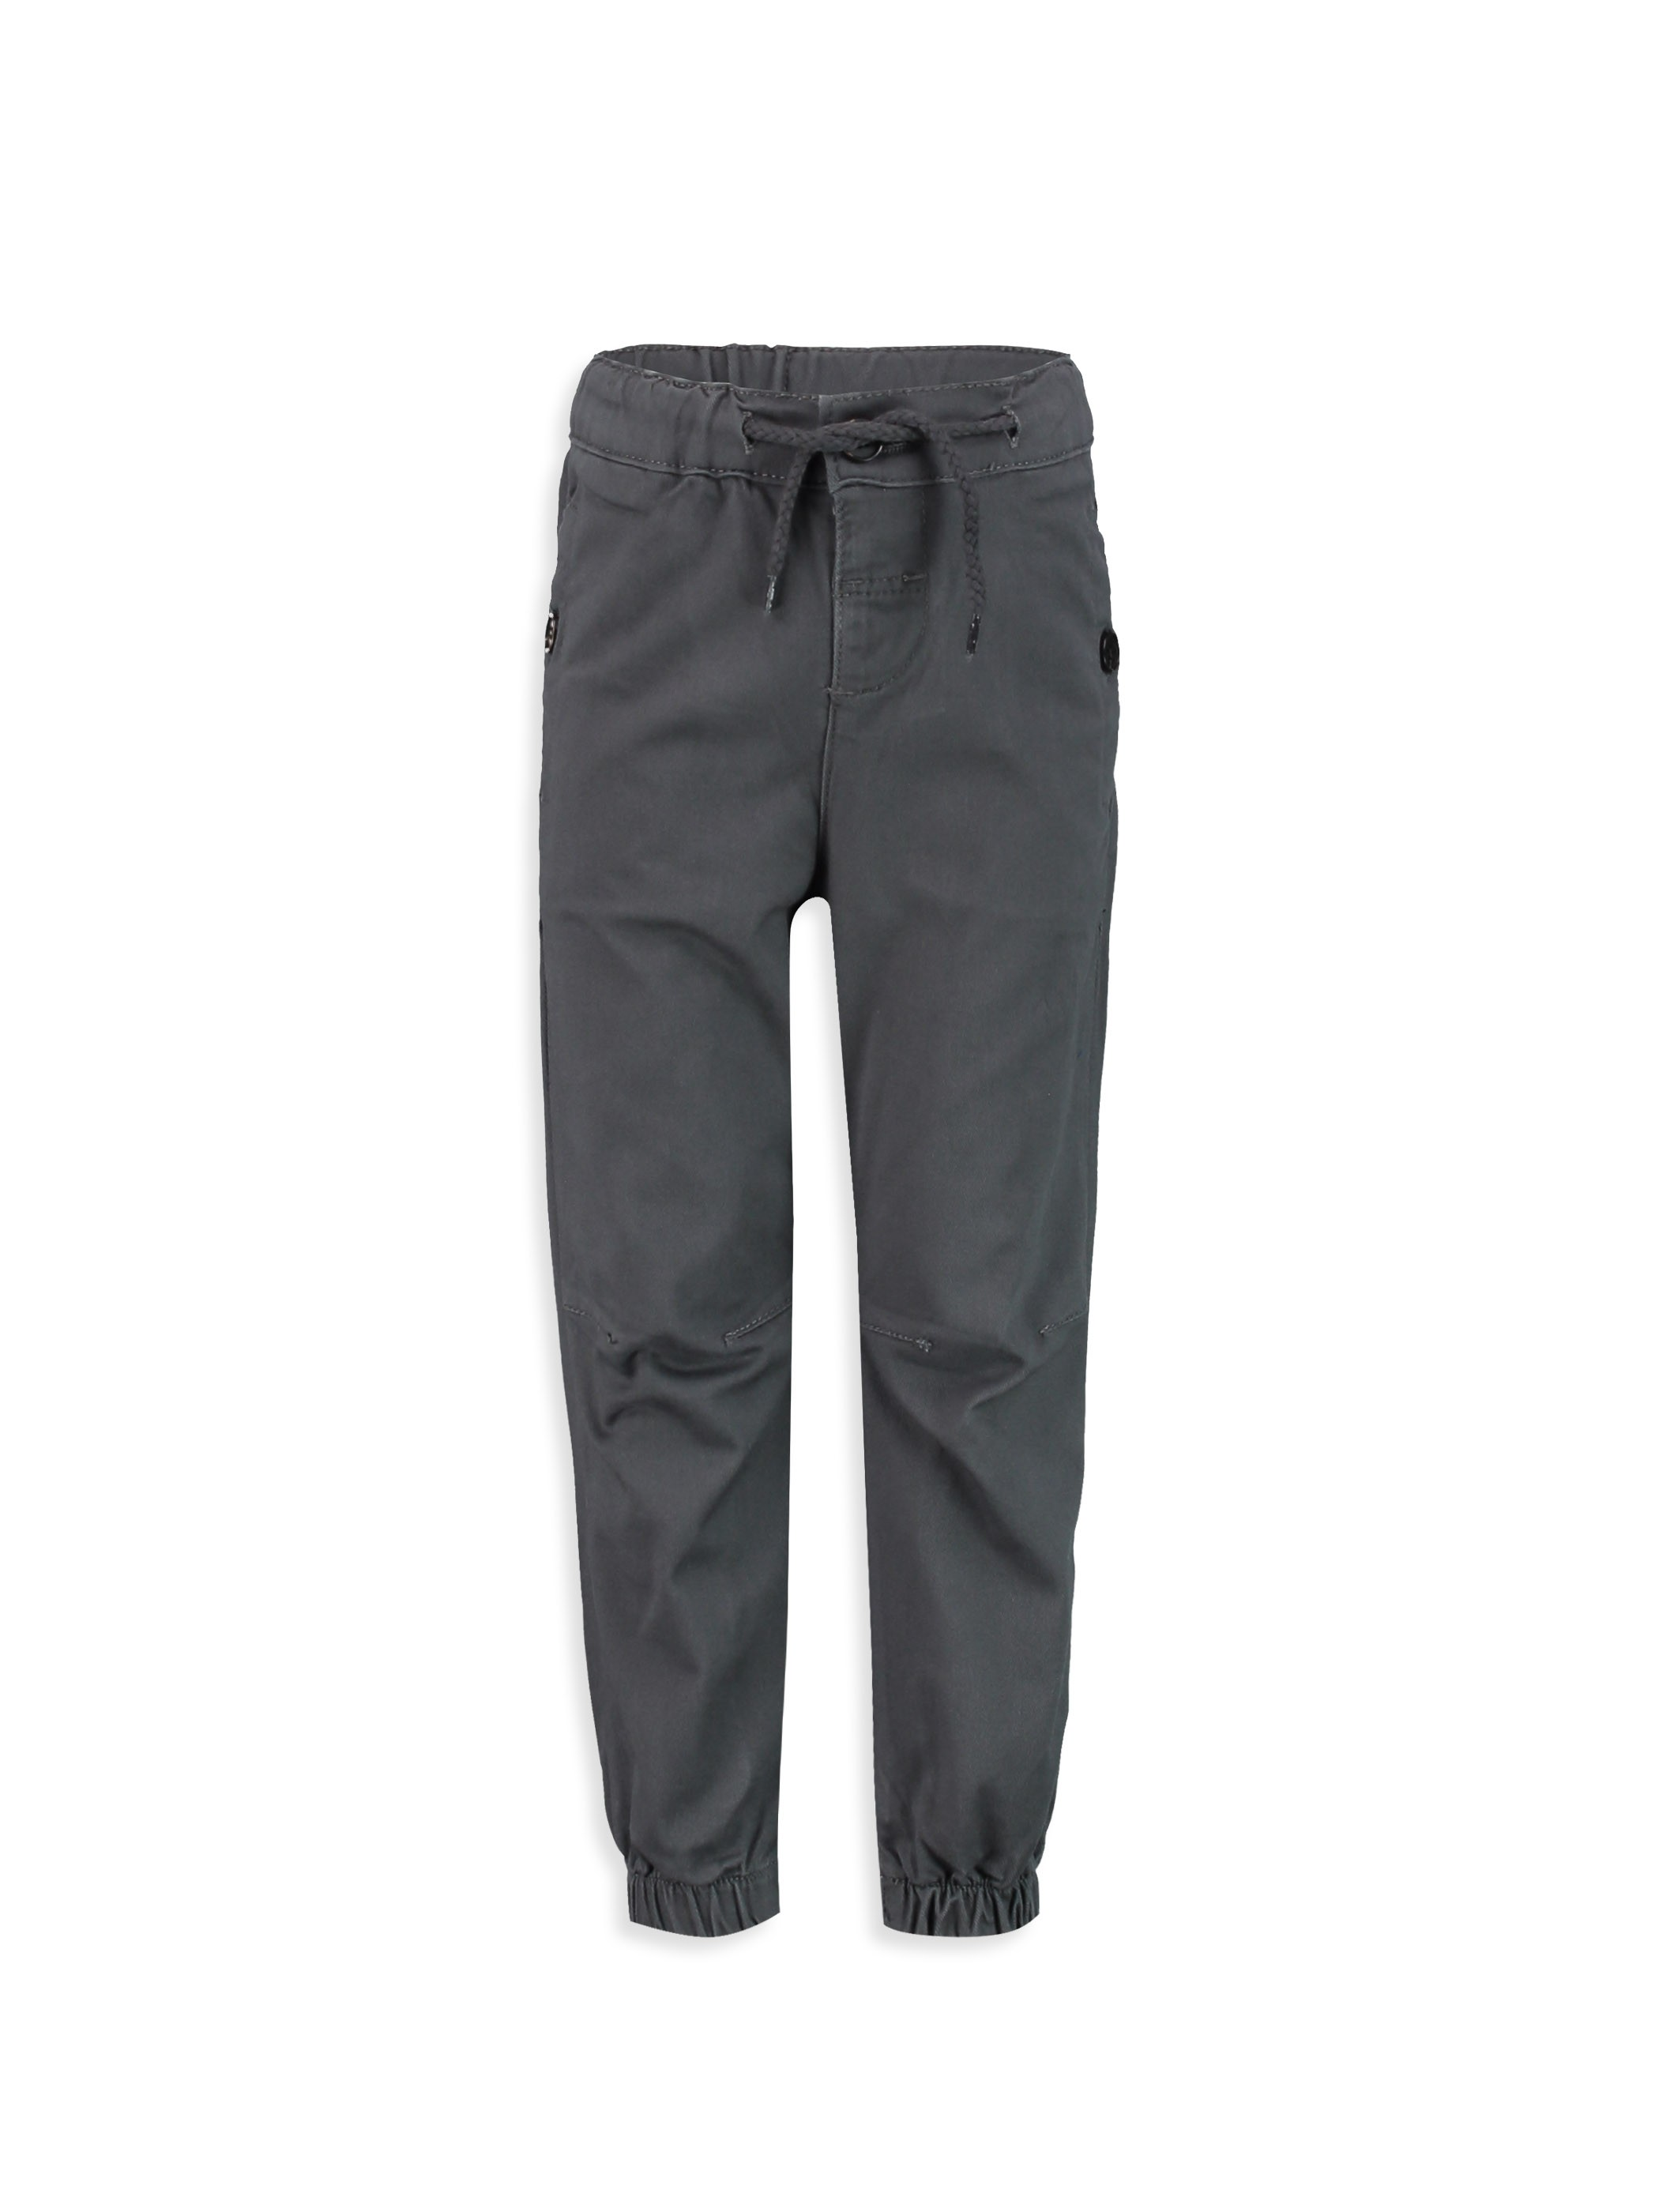 Anthracite - Trousers - 8SG862Z4